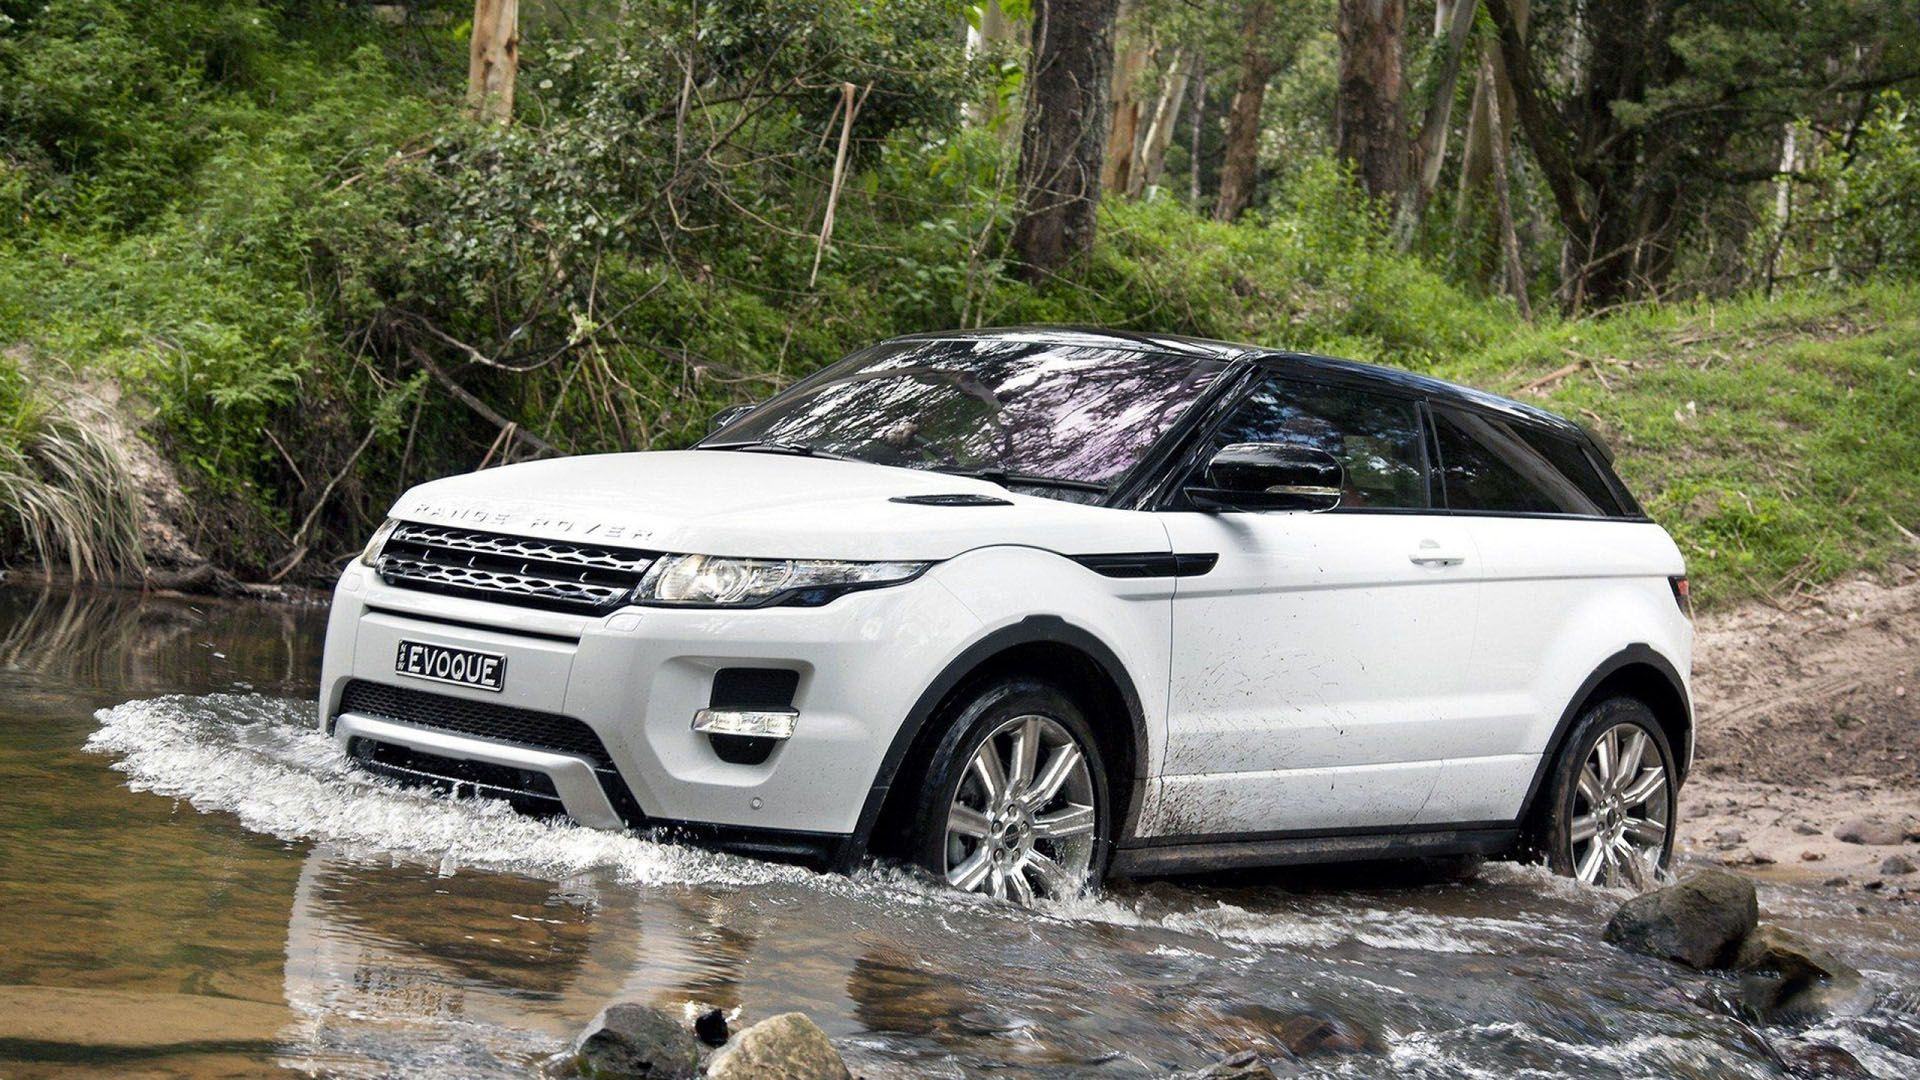 2020 land rover range rover evoque white offroading in swamp